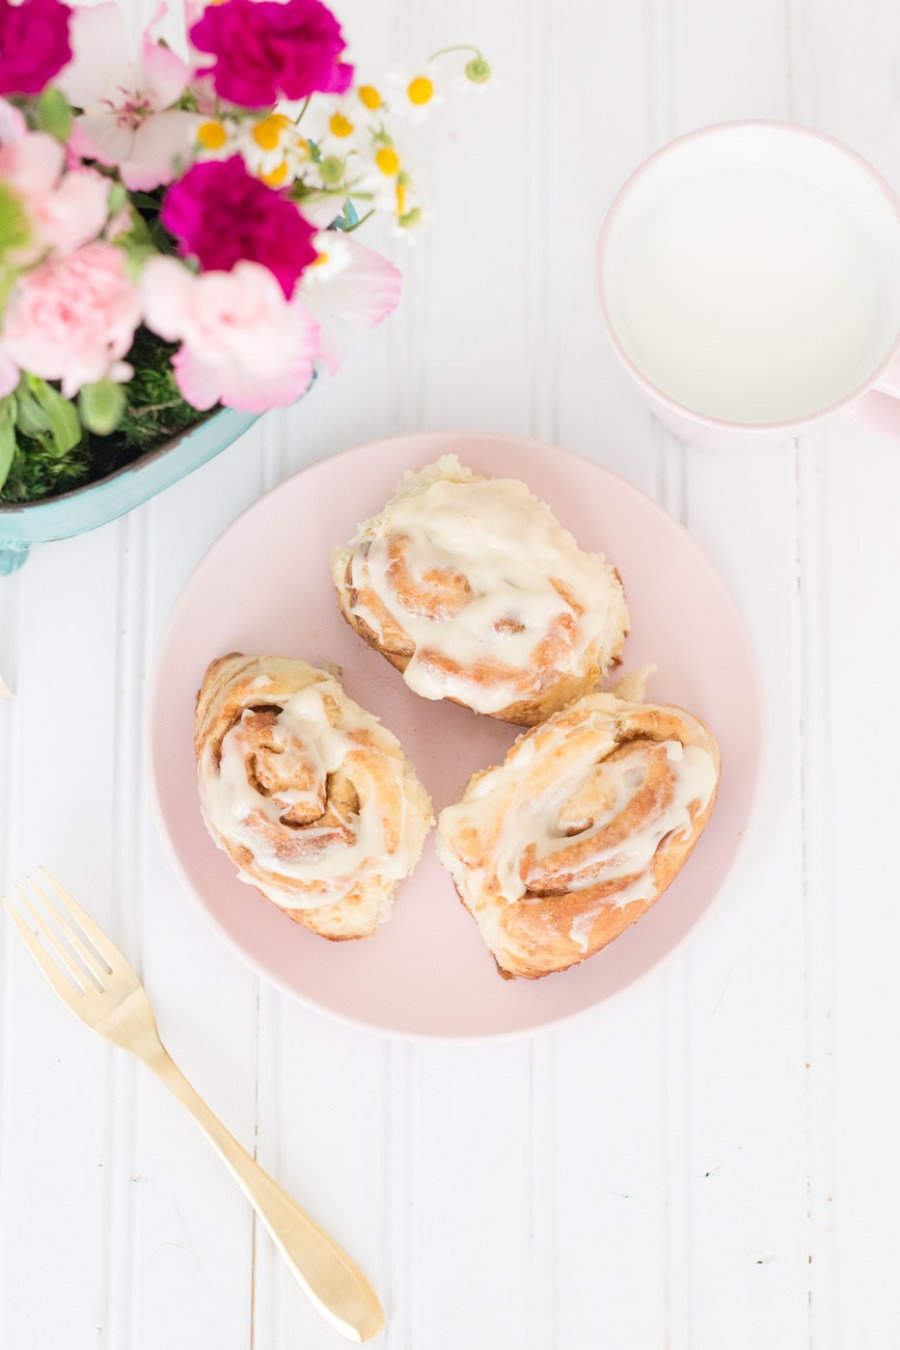 Easy Homemade Cinnamon Rolls with Cream Cheese Frosting